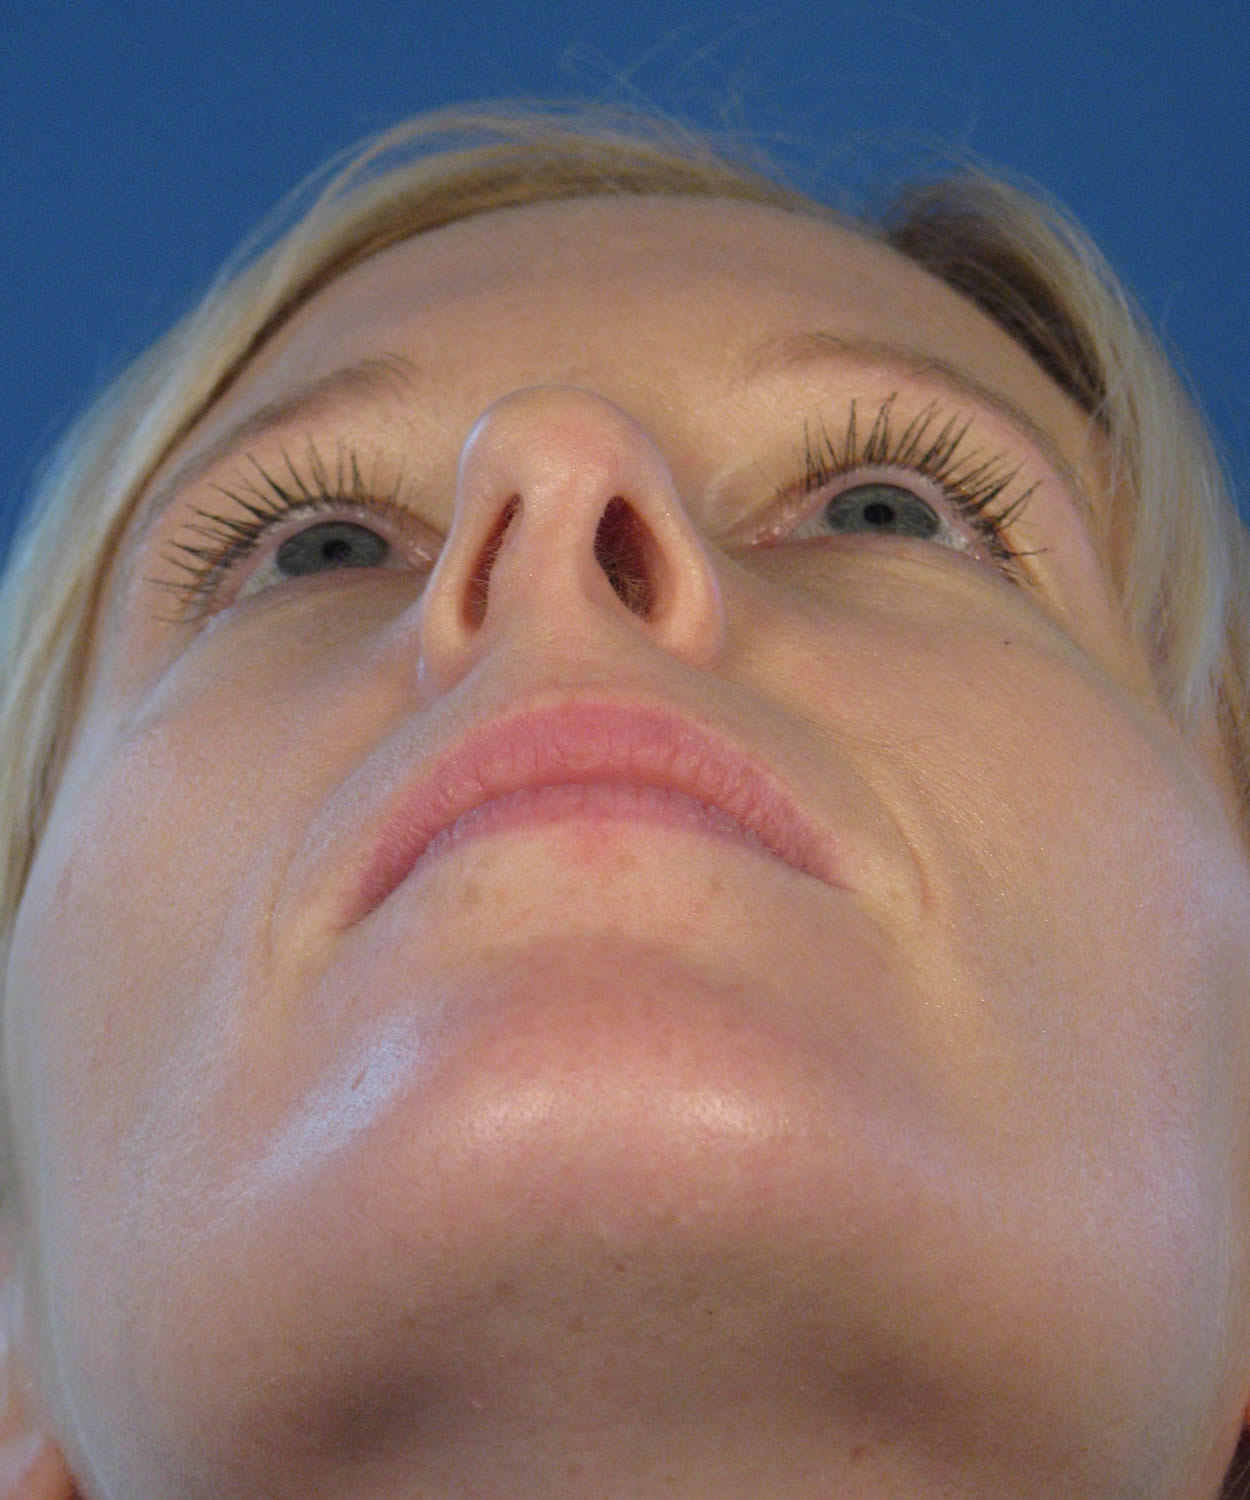 Nostril Asymmetry After Rhinoplasty and Revision Rhinoplasty